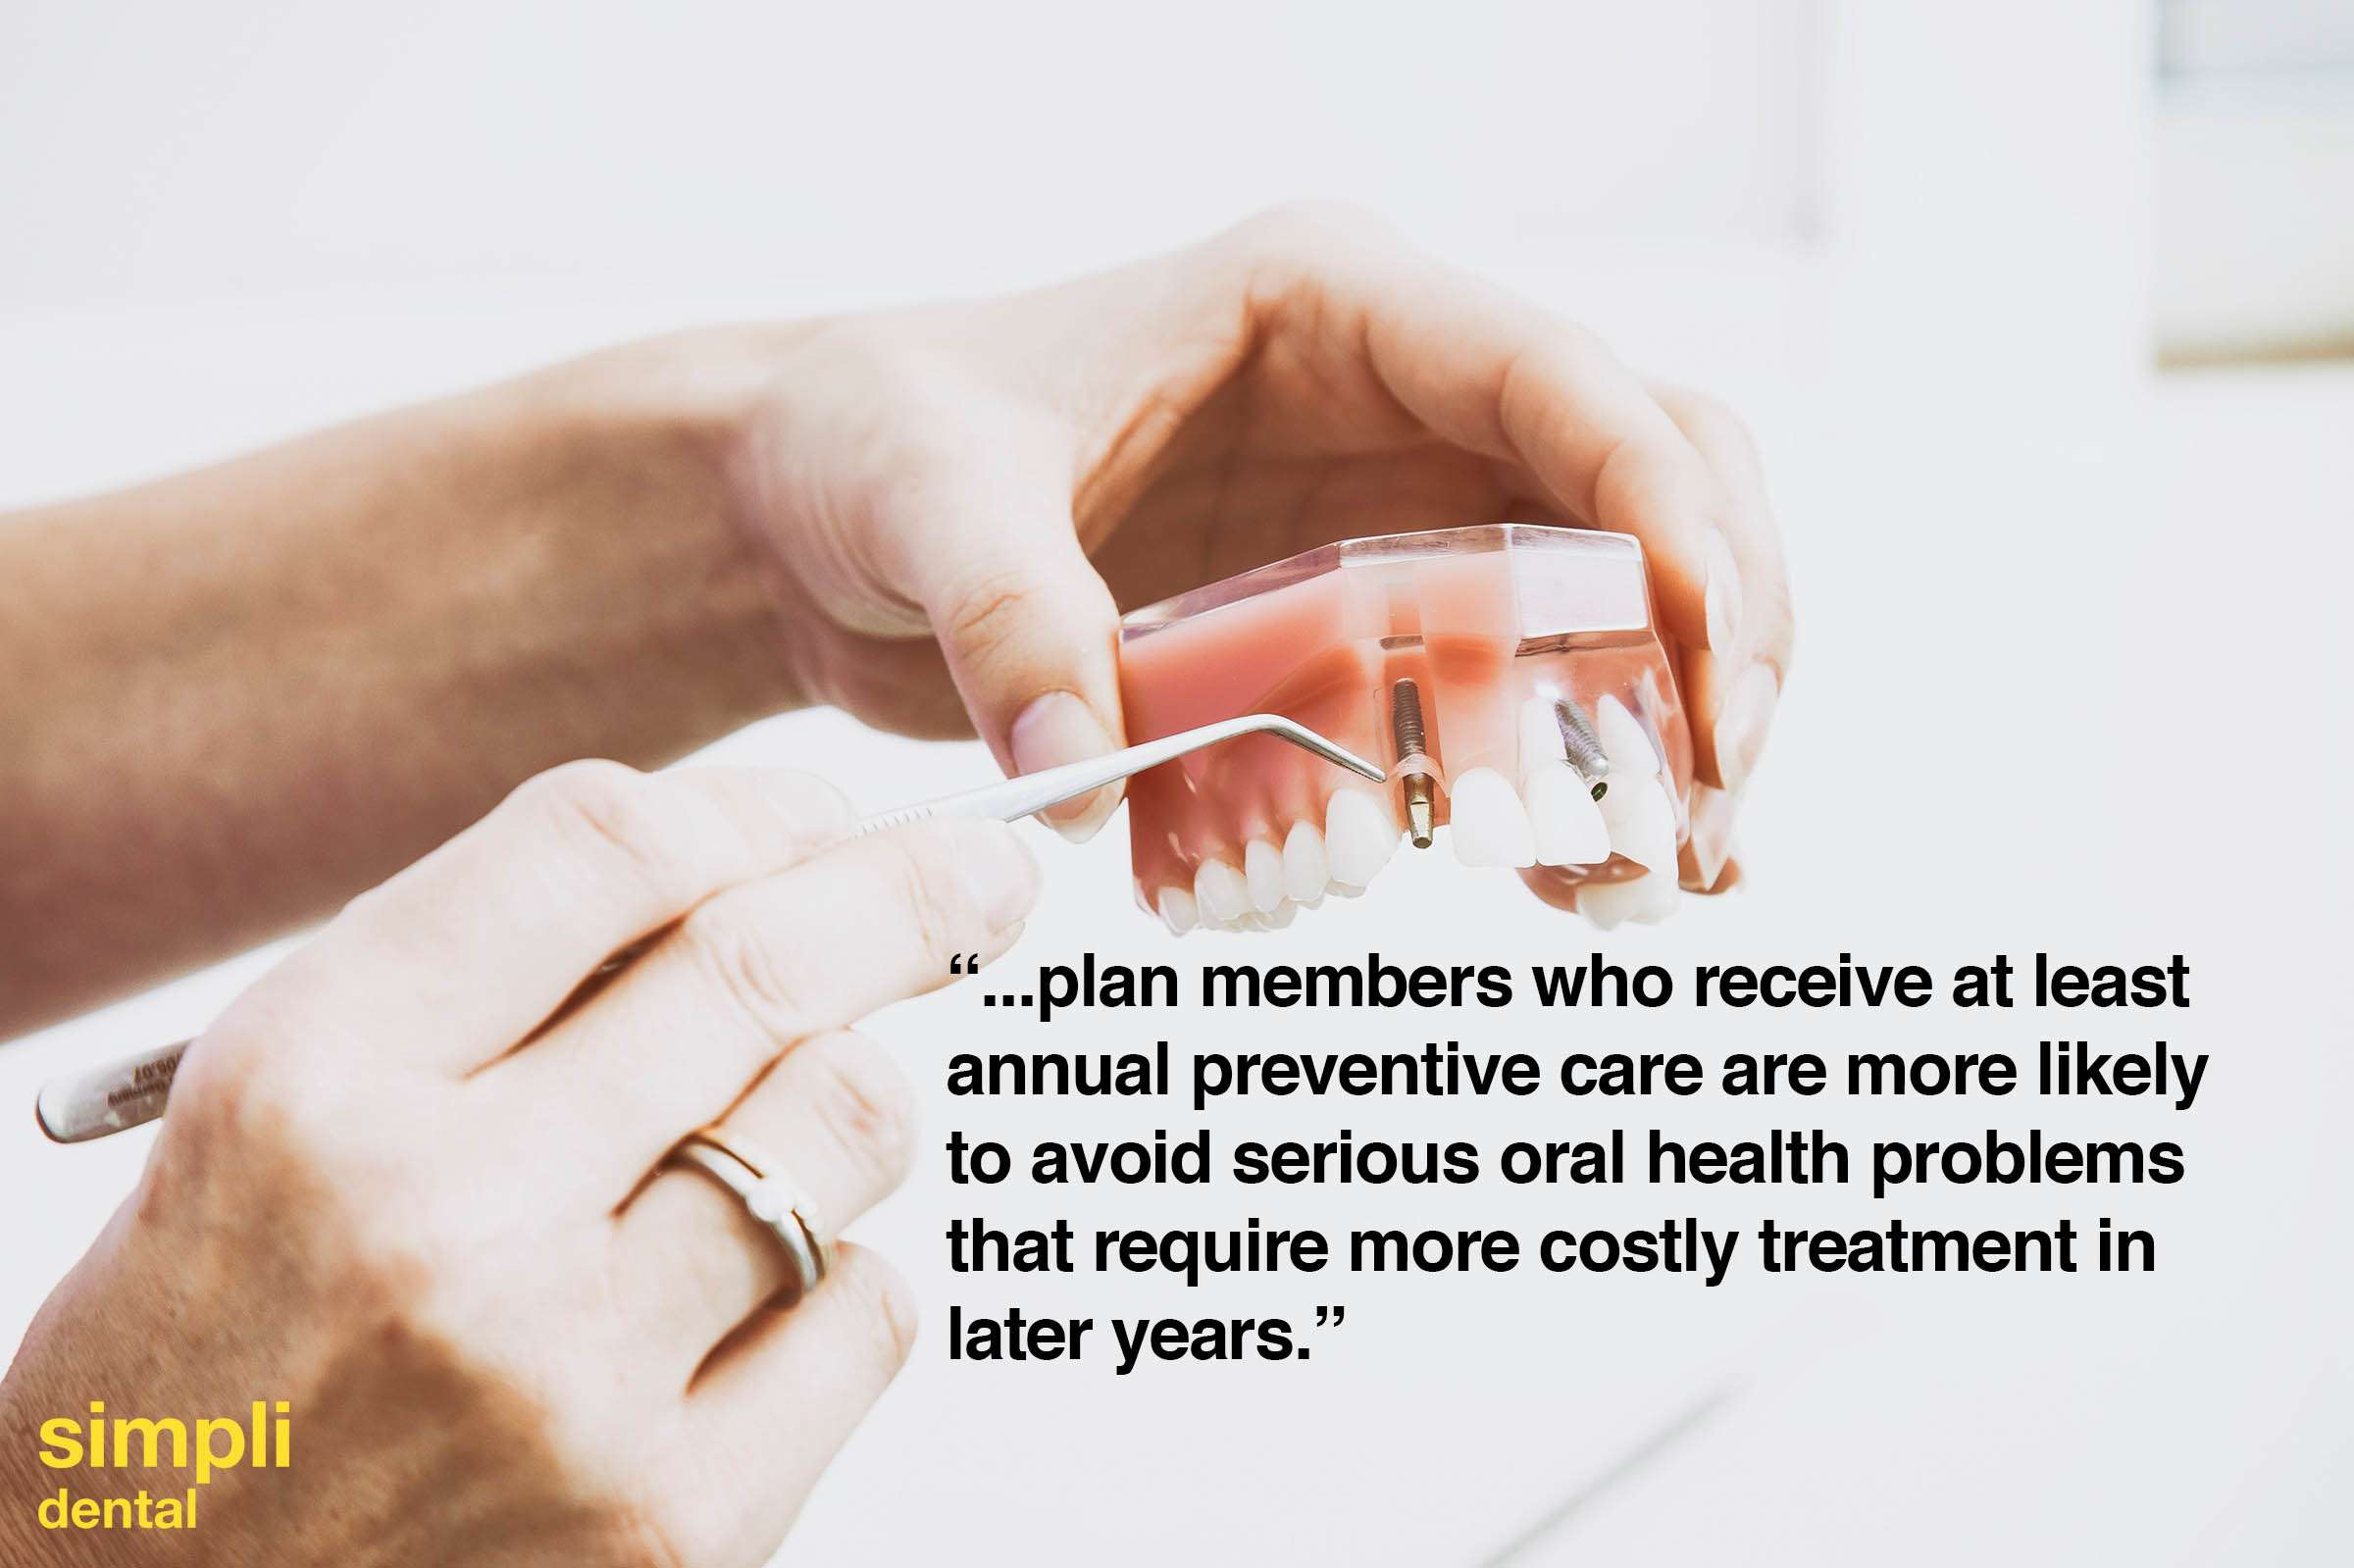 to avoid serious oral health problems that require more costly treatment in later years